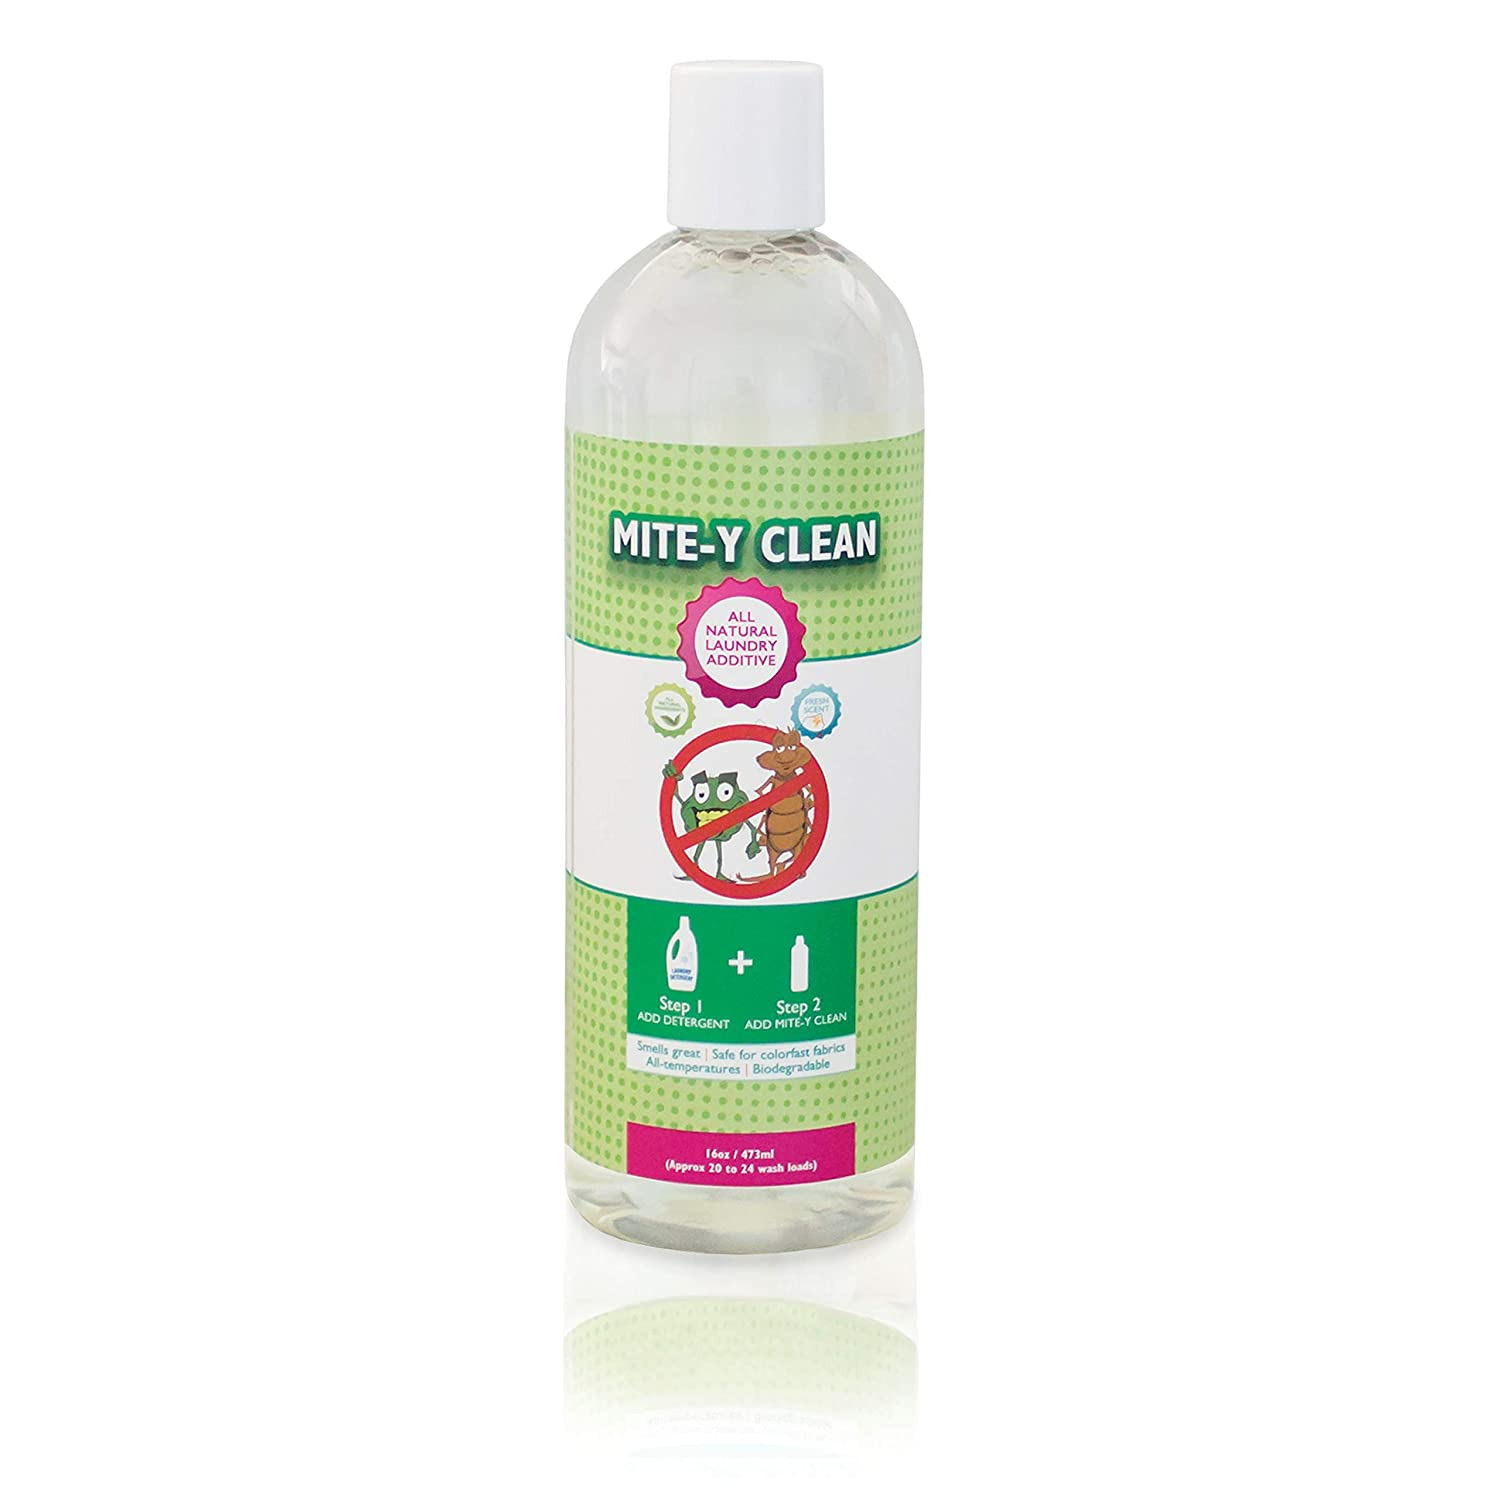 Amazon.com: Mite-y Clean - Aditivo natural para la ropa ...